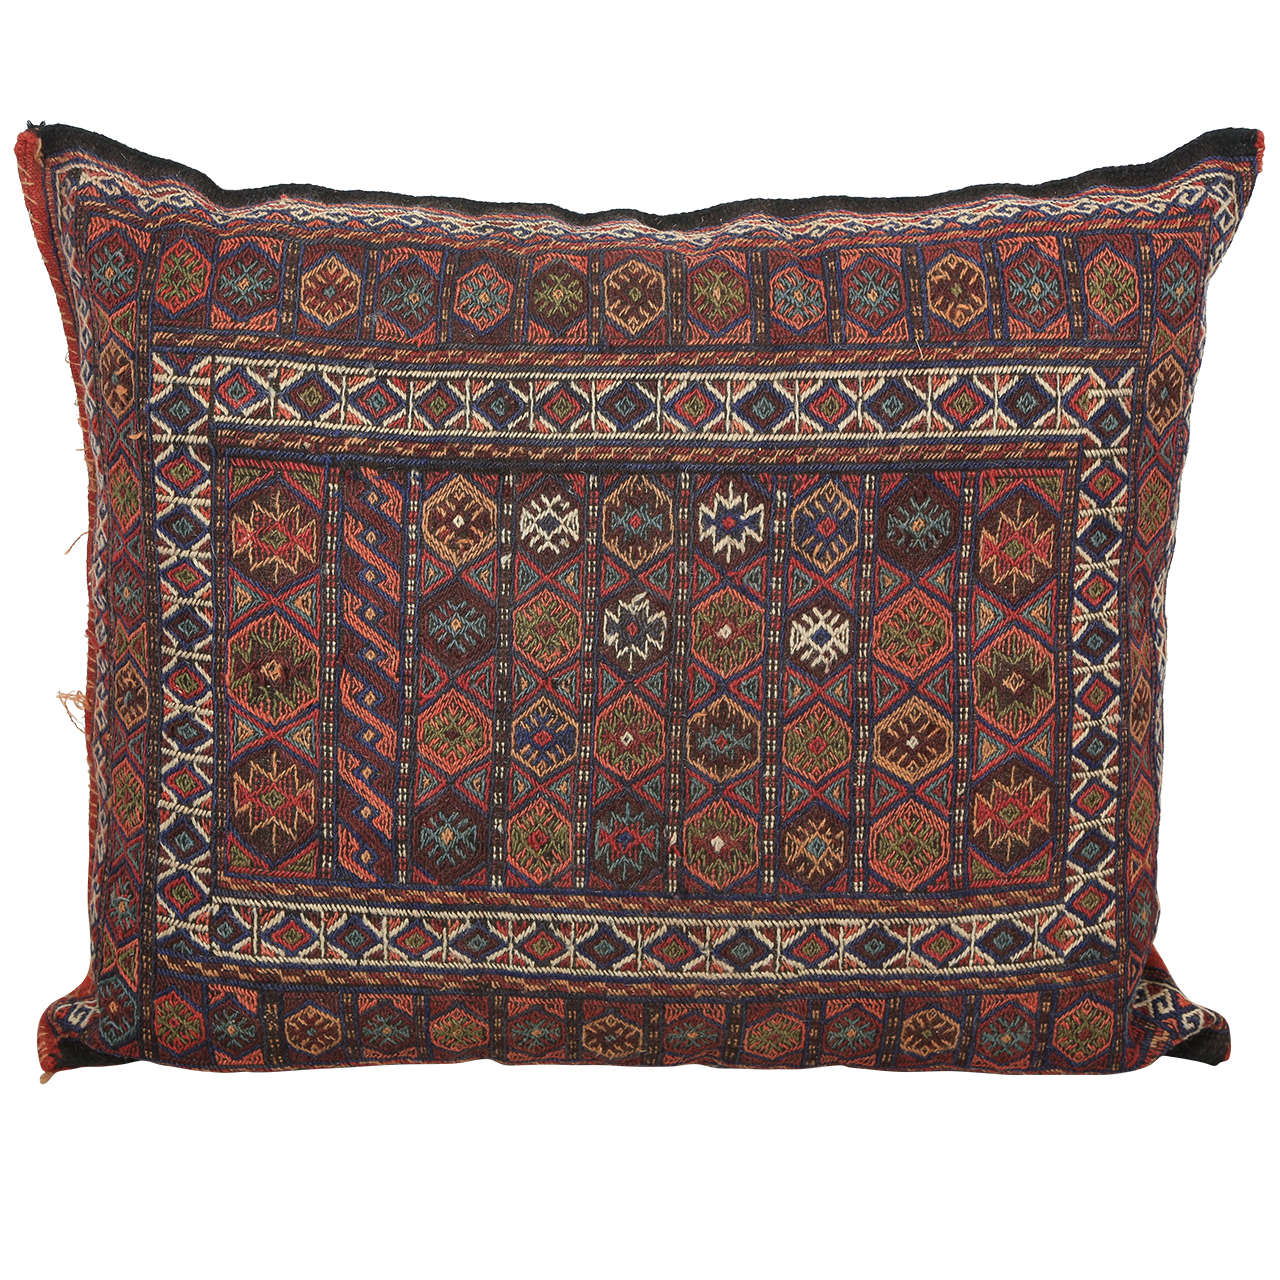 Moroccan Floor Pillows: Moroccan Tribal Kilim Floor Pillow For Sale At 1stdibs